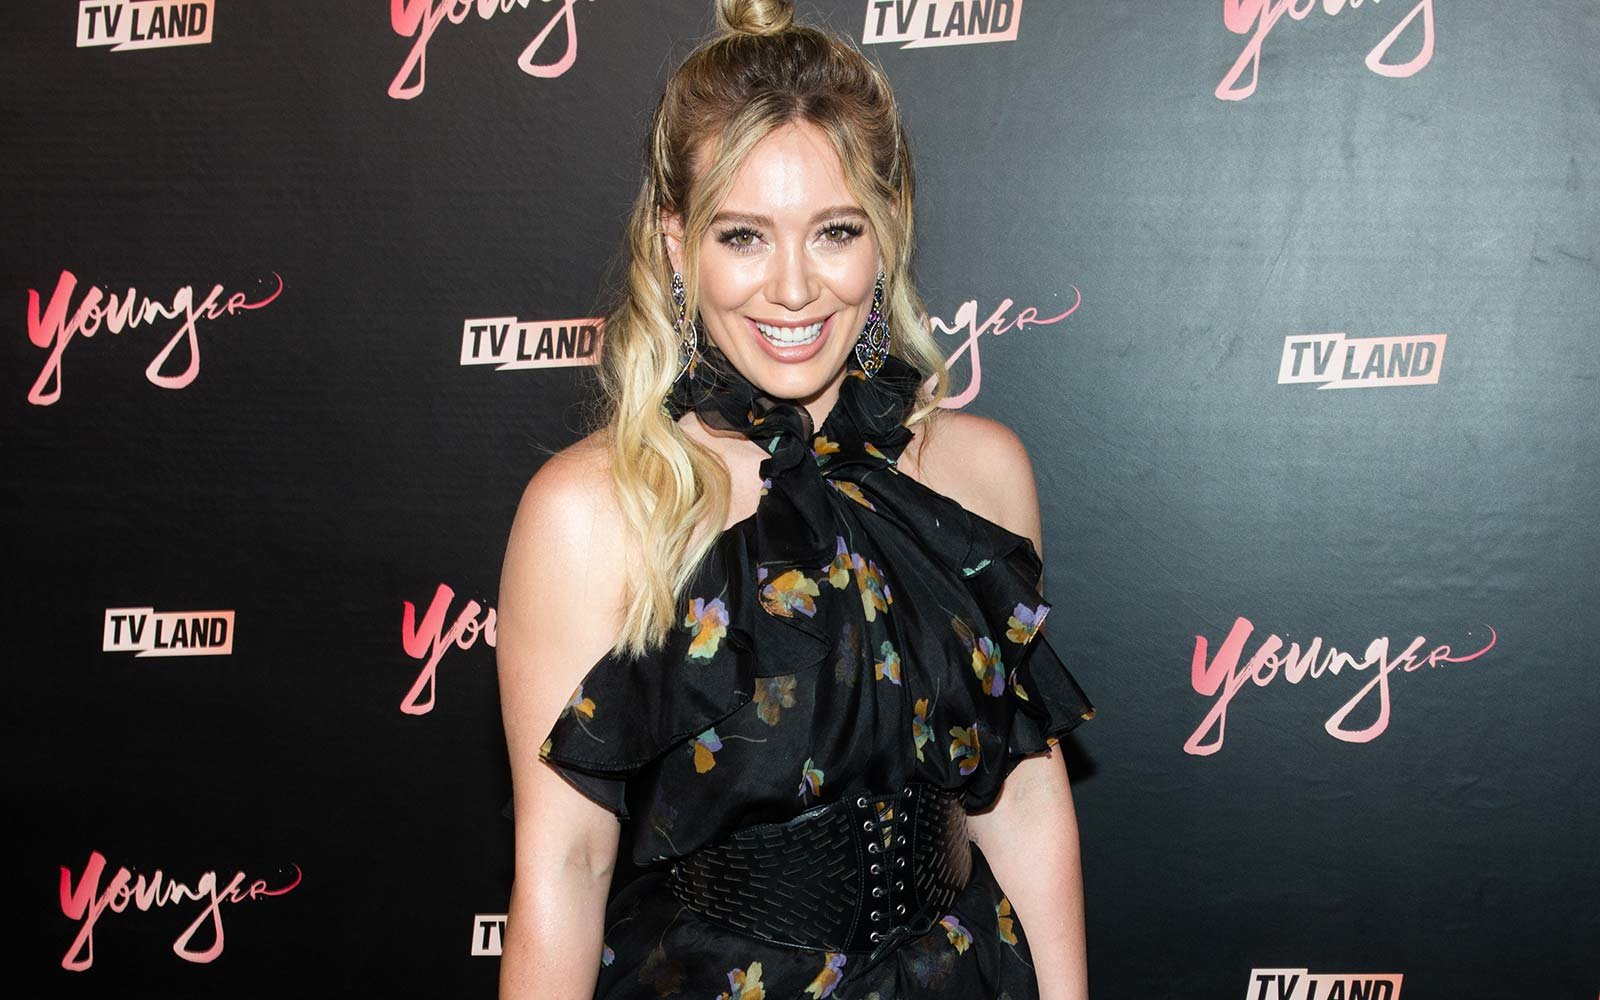 Actress Hilary Duff attends the  Younger  season four premiere party in New York City.